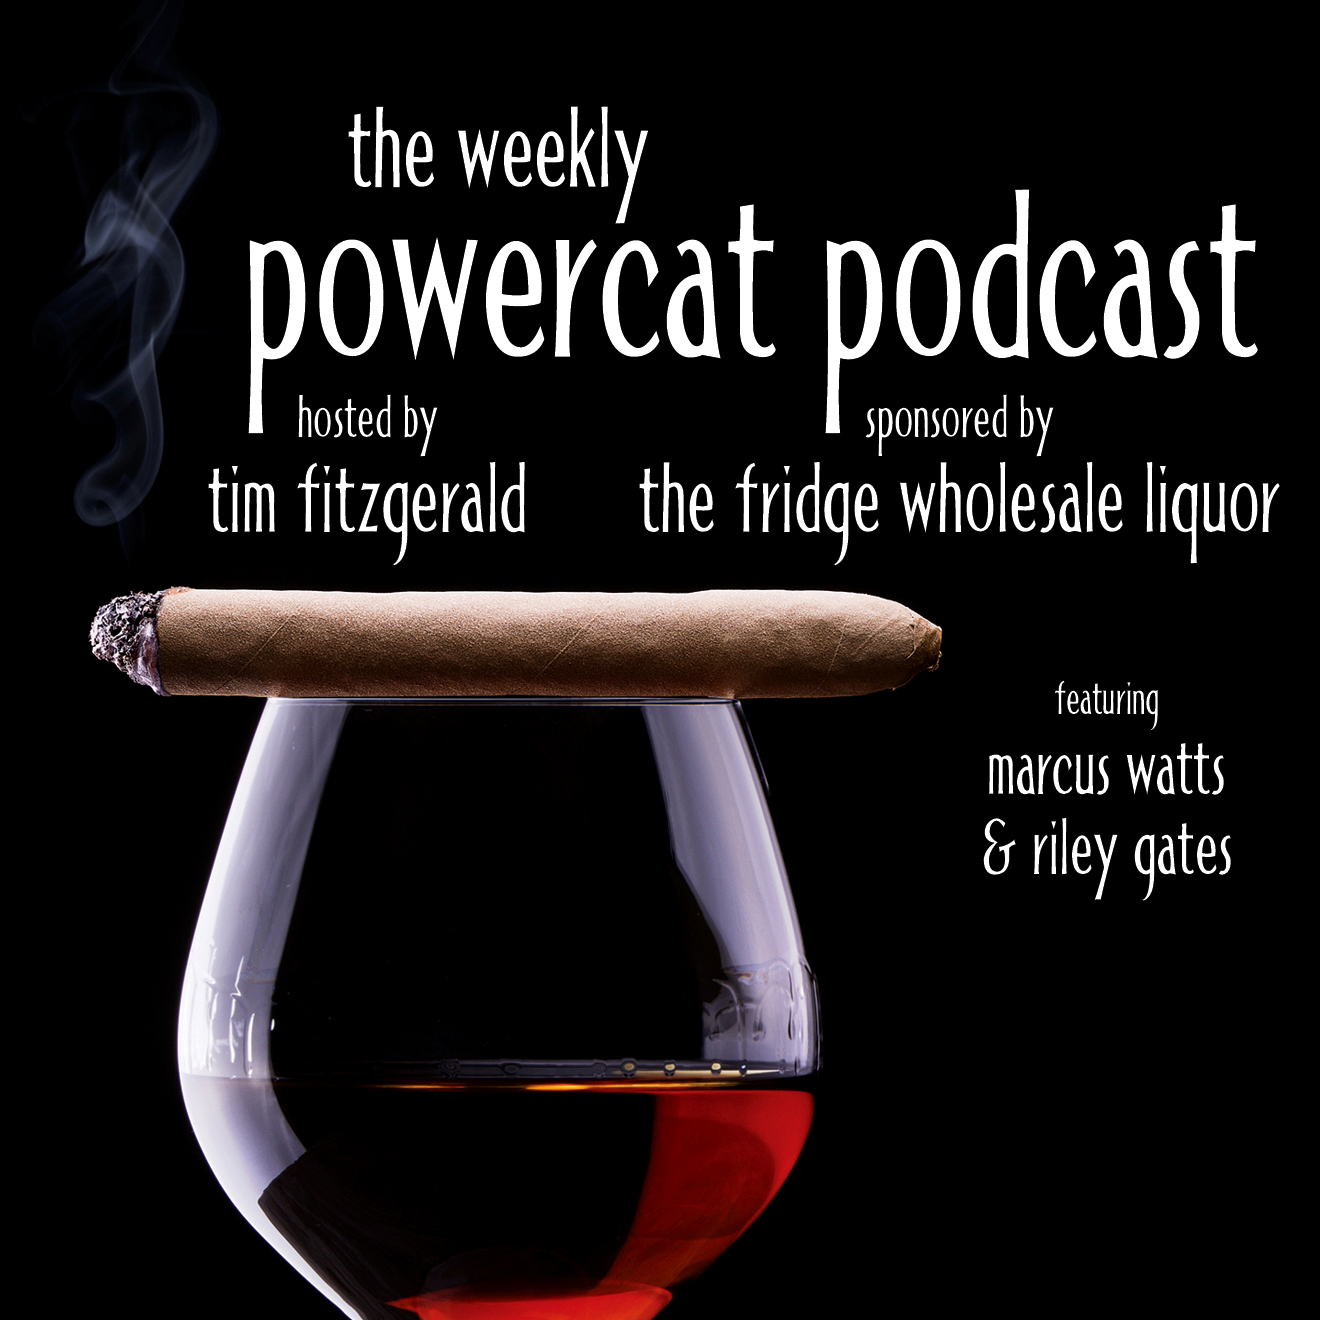 The Powercat Podcast 10.19.16